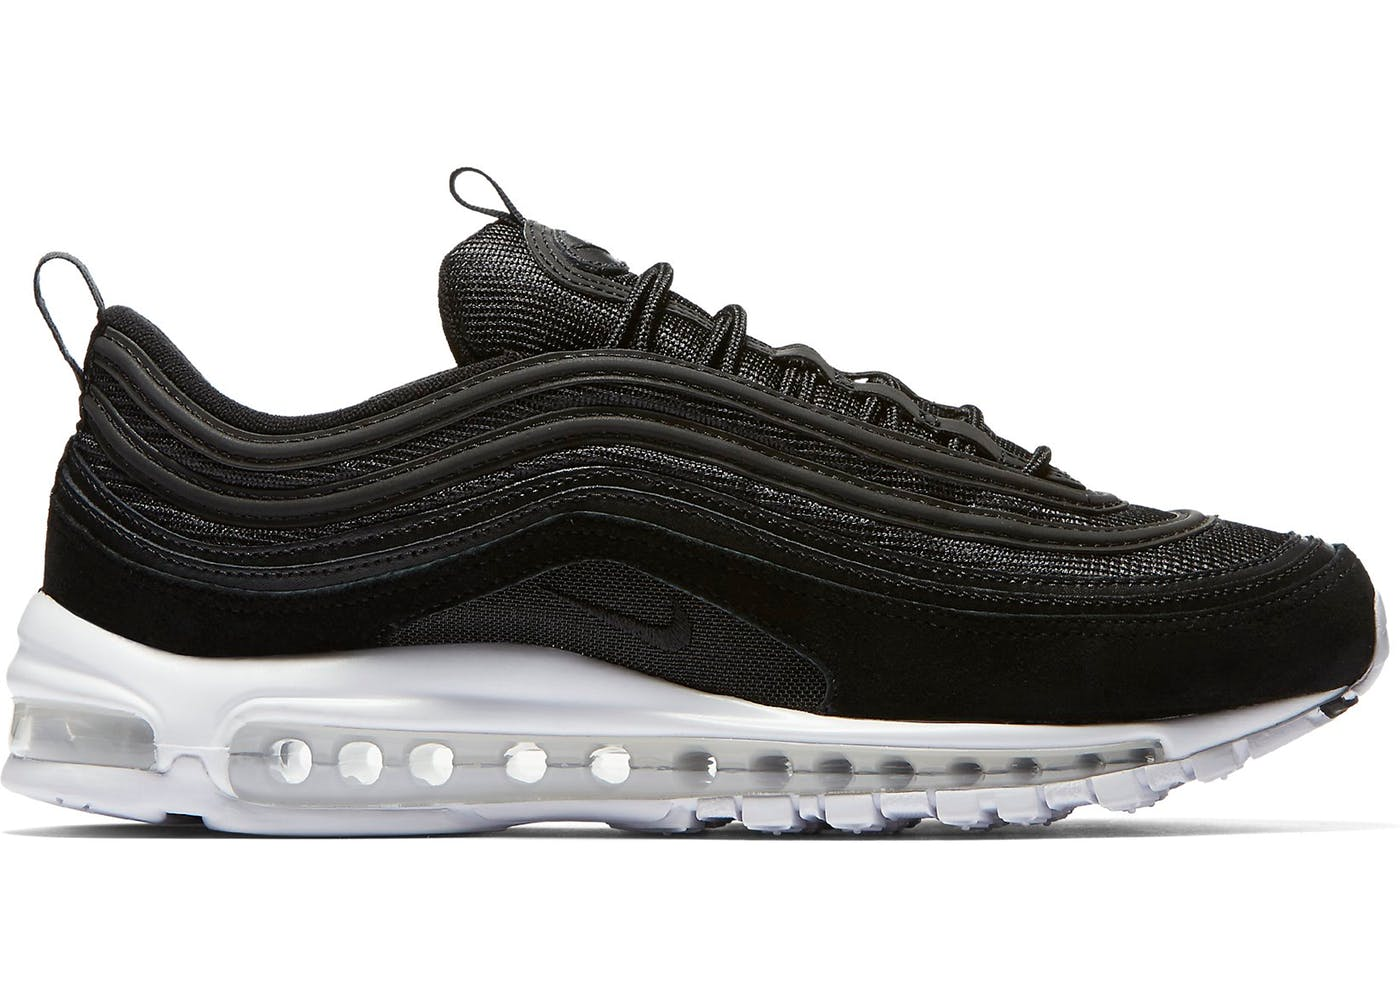 Air Max 97 PRM Black White